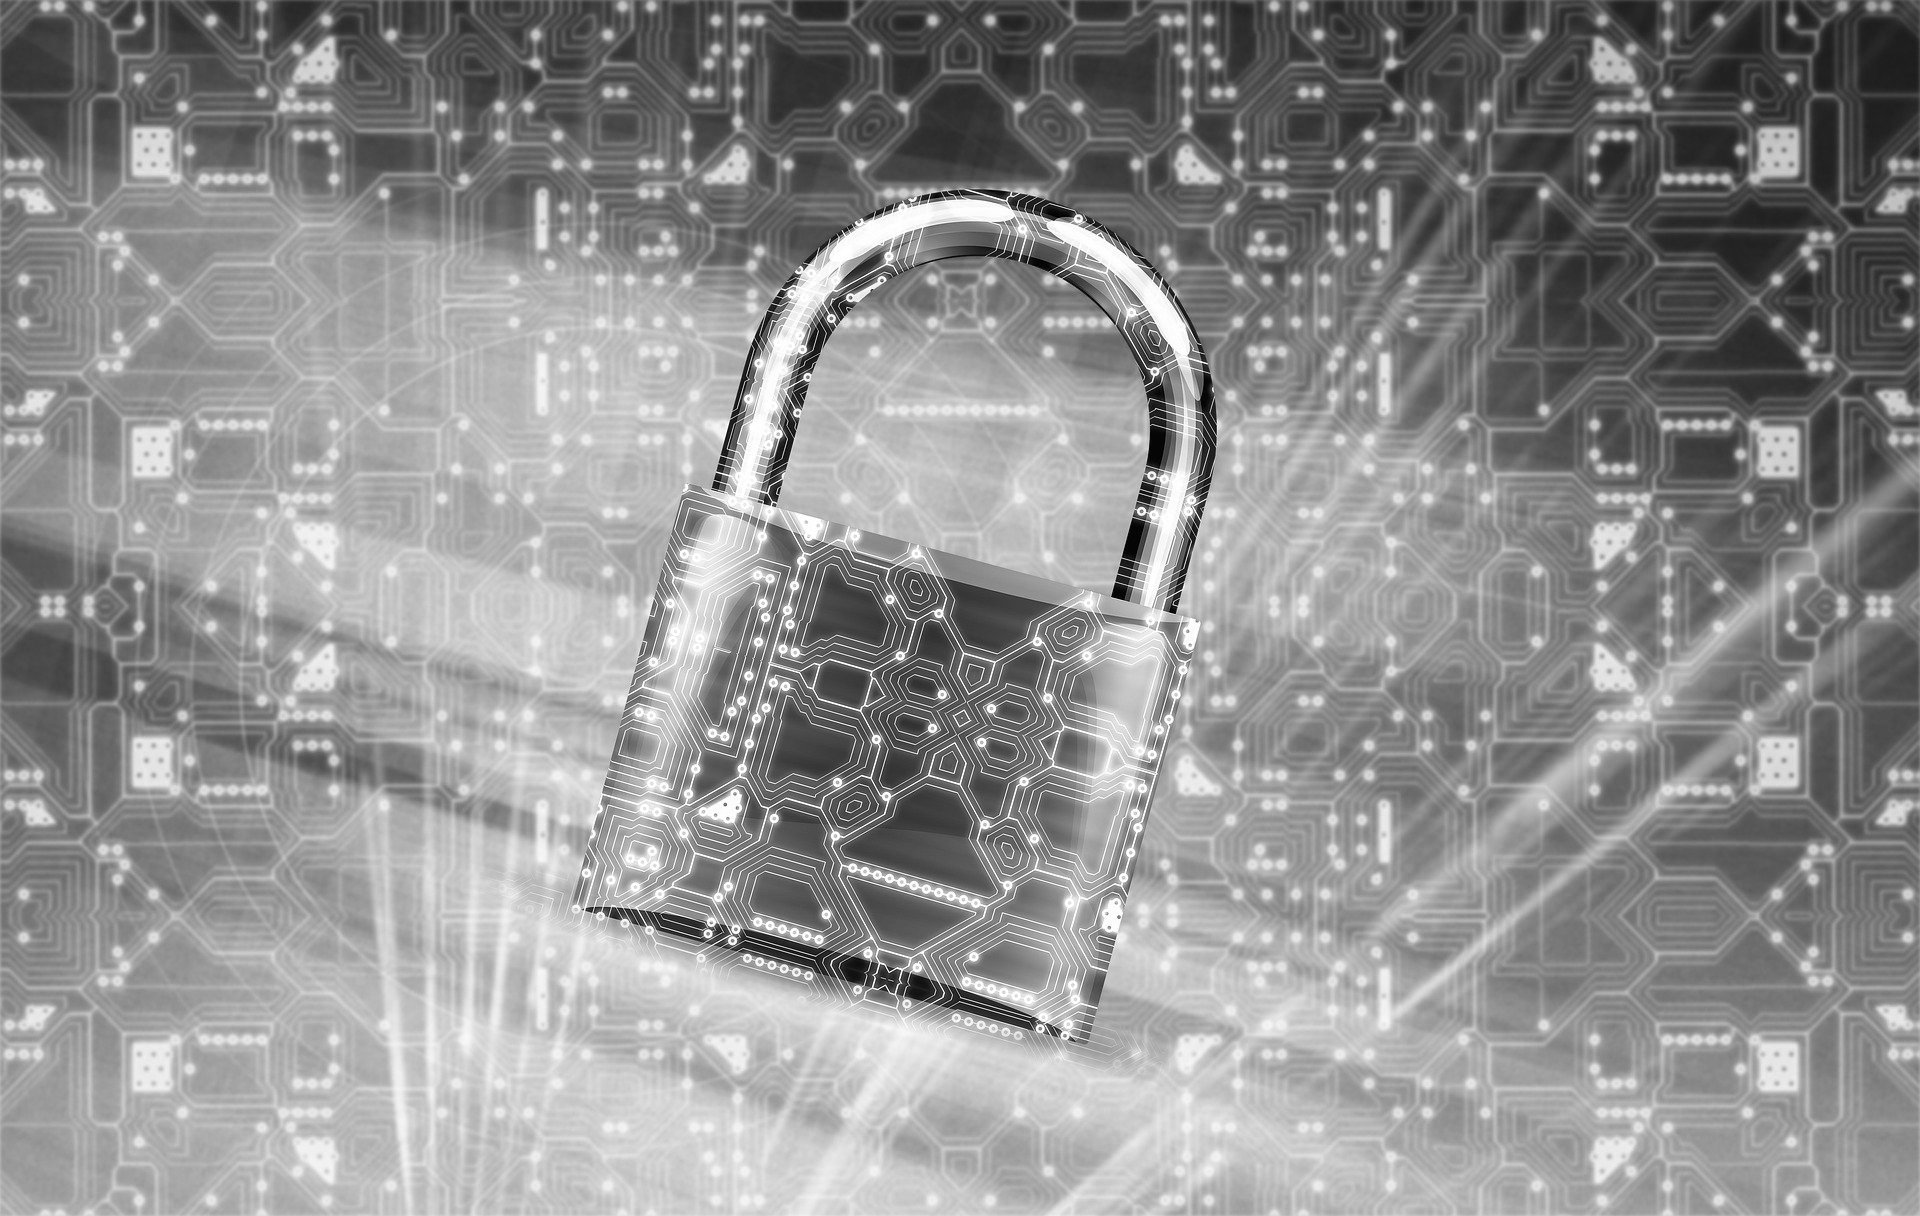 The Distinction: Data Privacy versus Protection - Compare the Cloud